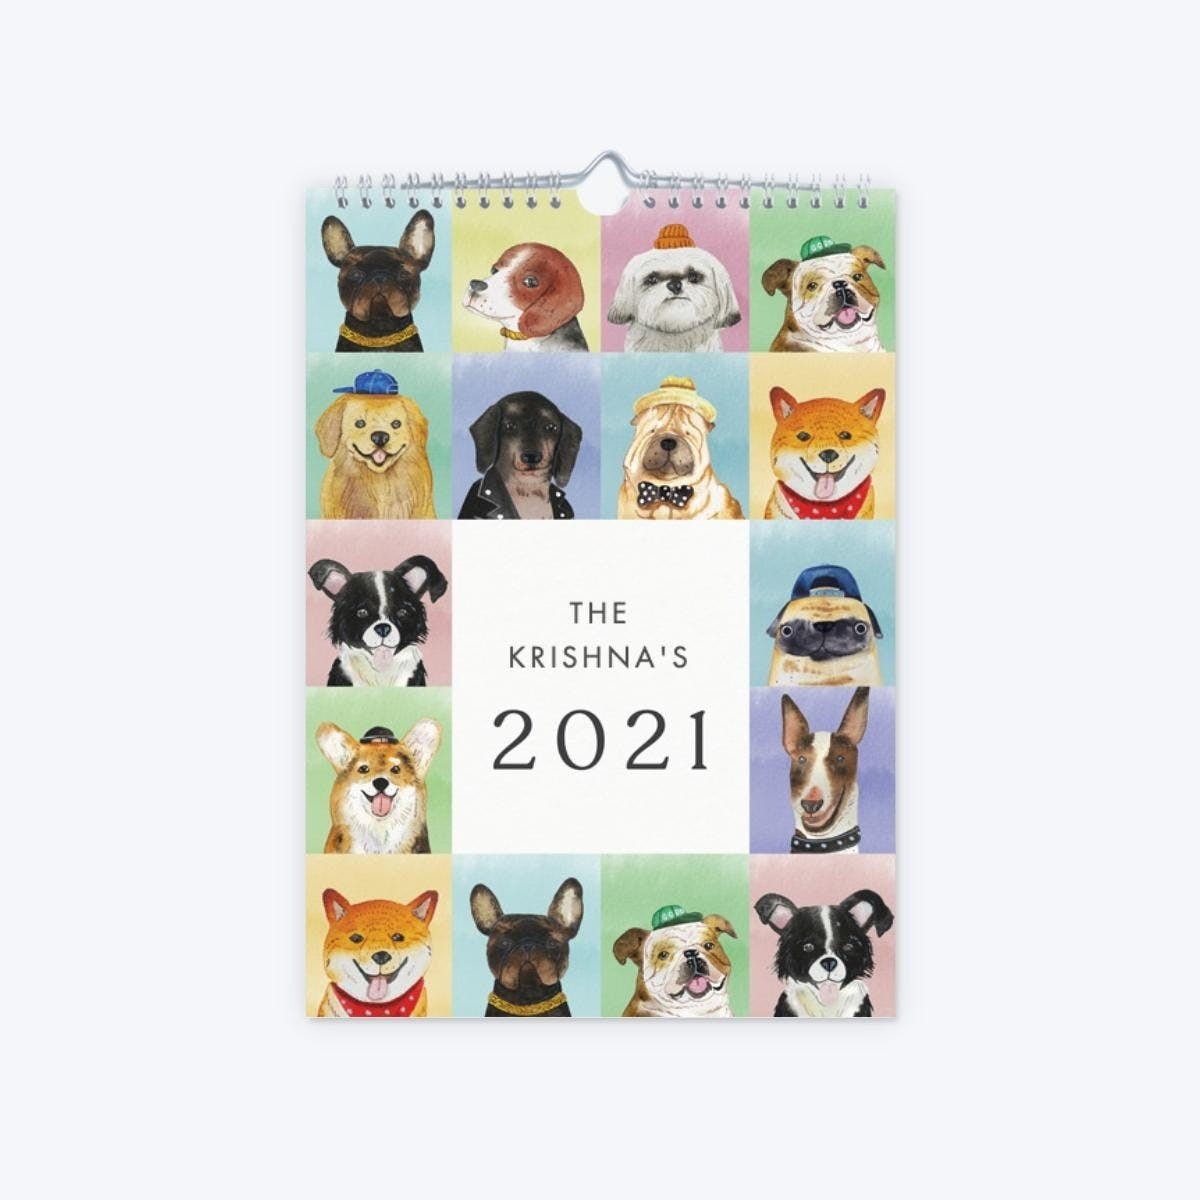 wall calendar with illustrations of dogs on it